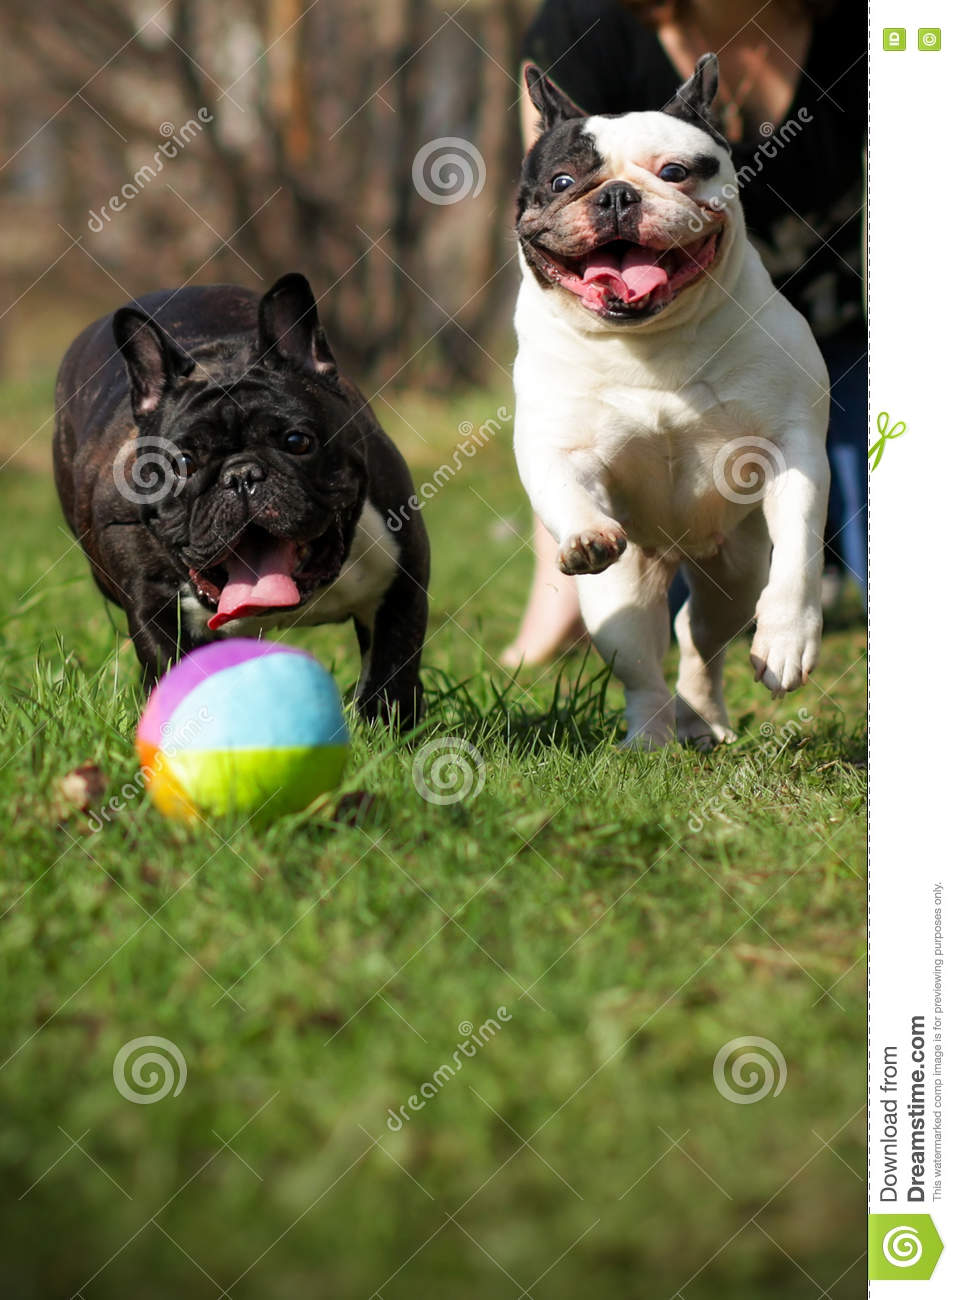 Two happy dogs French bulldogs playing ball